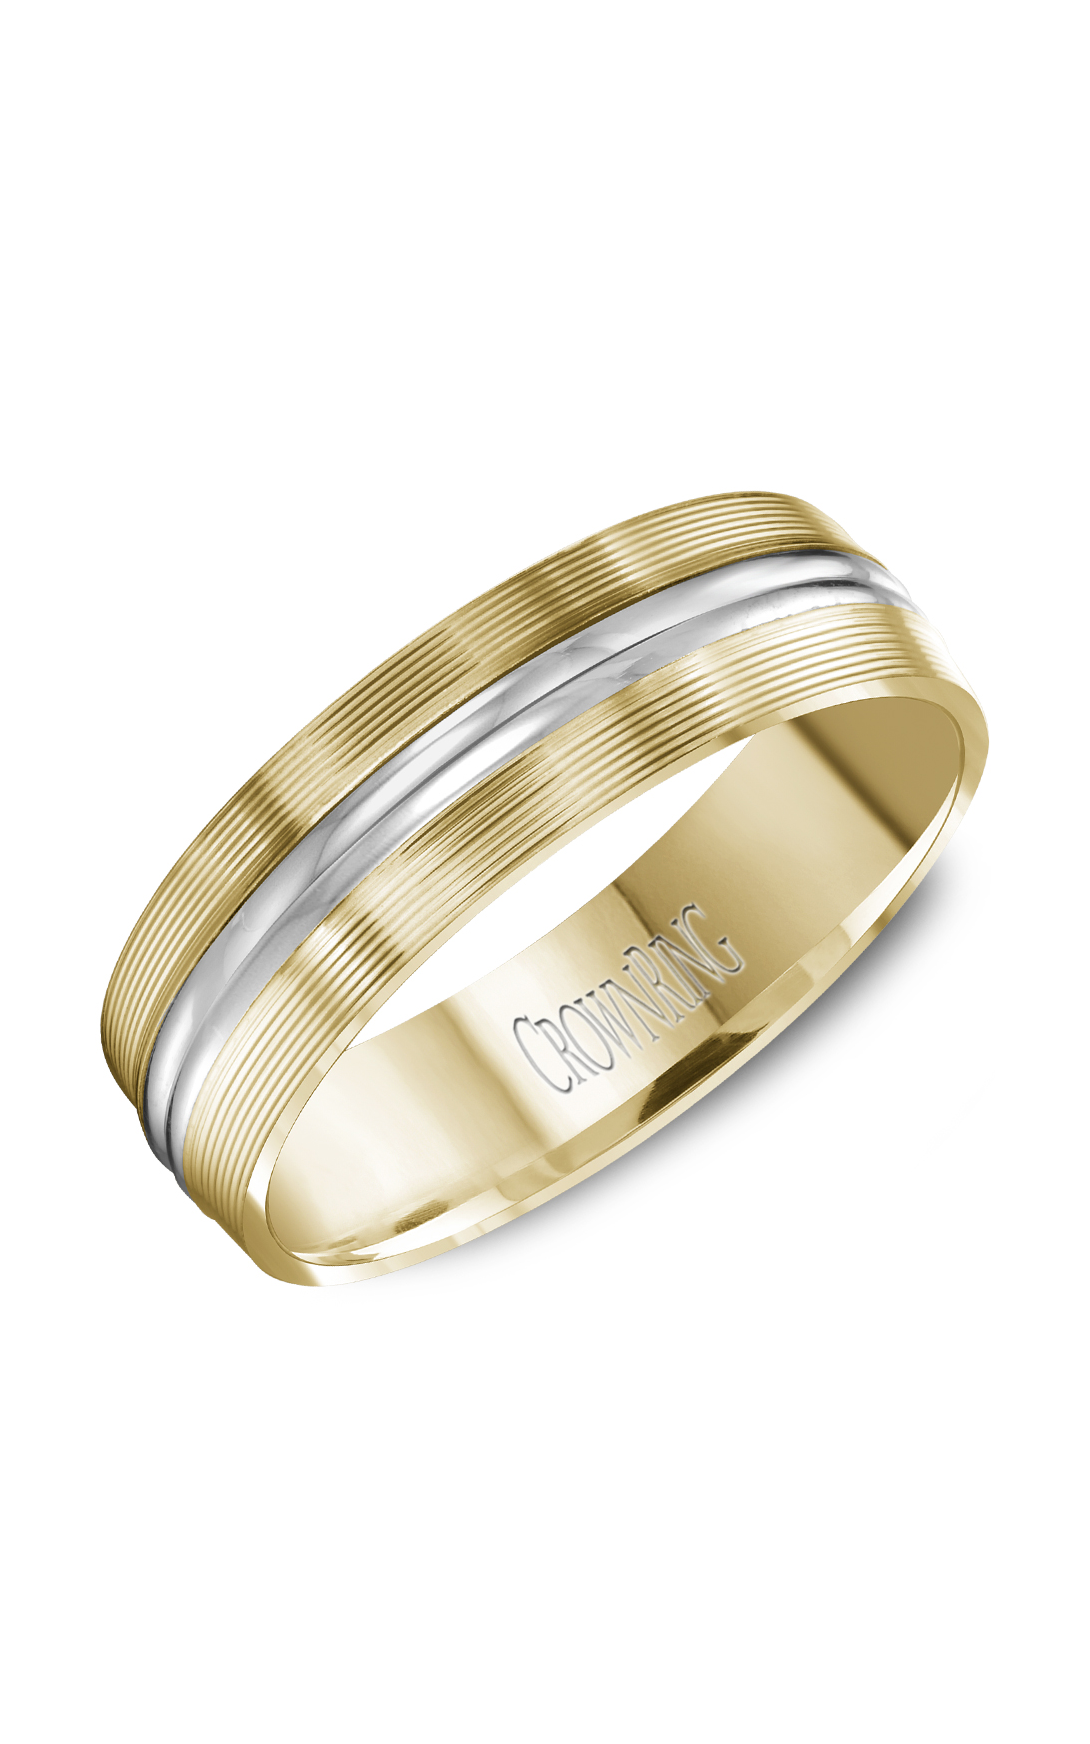 Crown Ring Men's Wedding Band WB-8087 product image